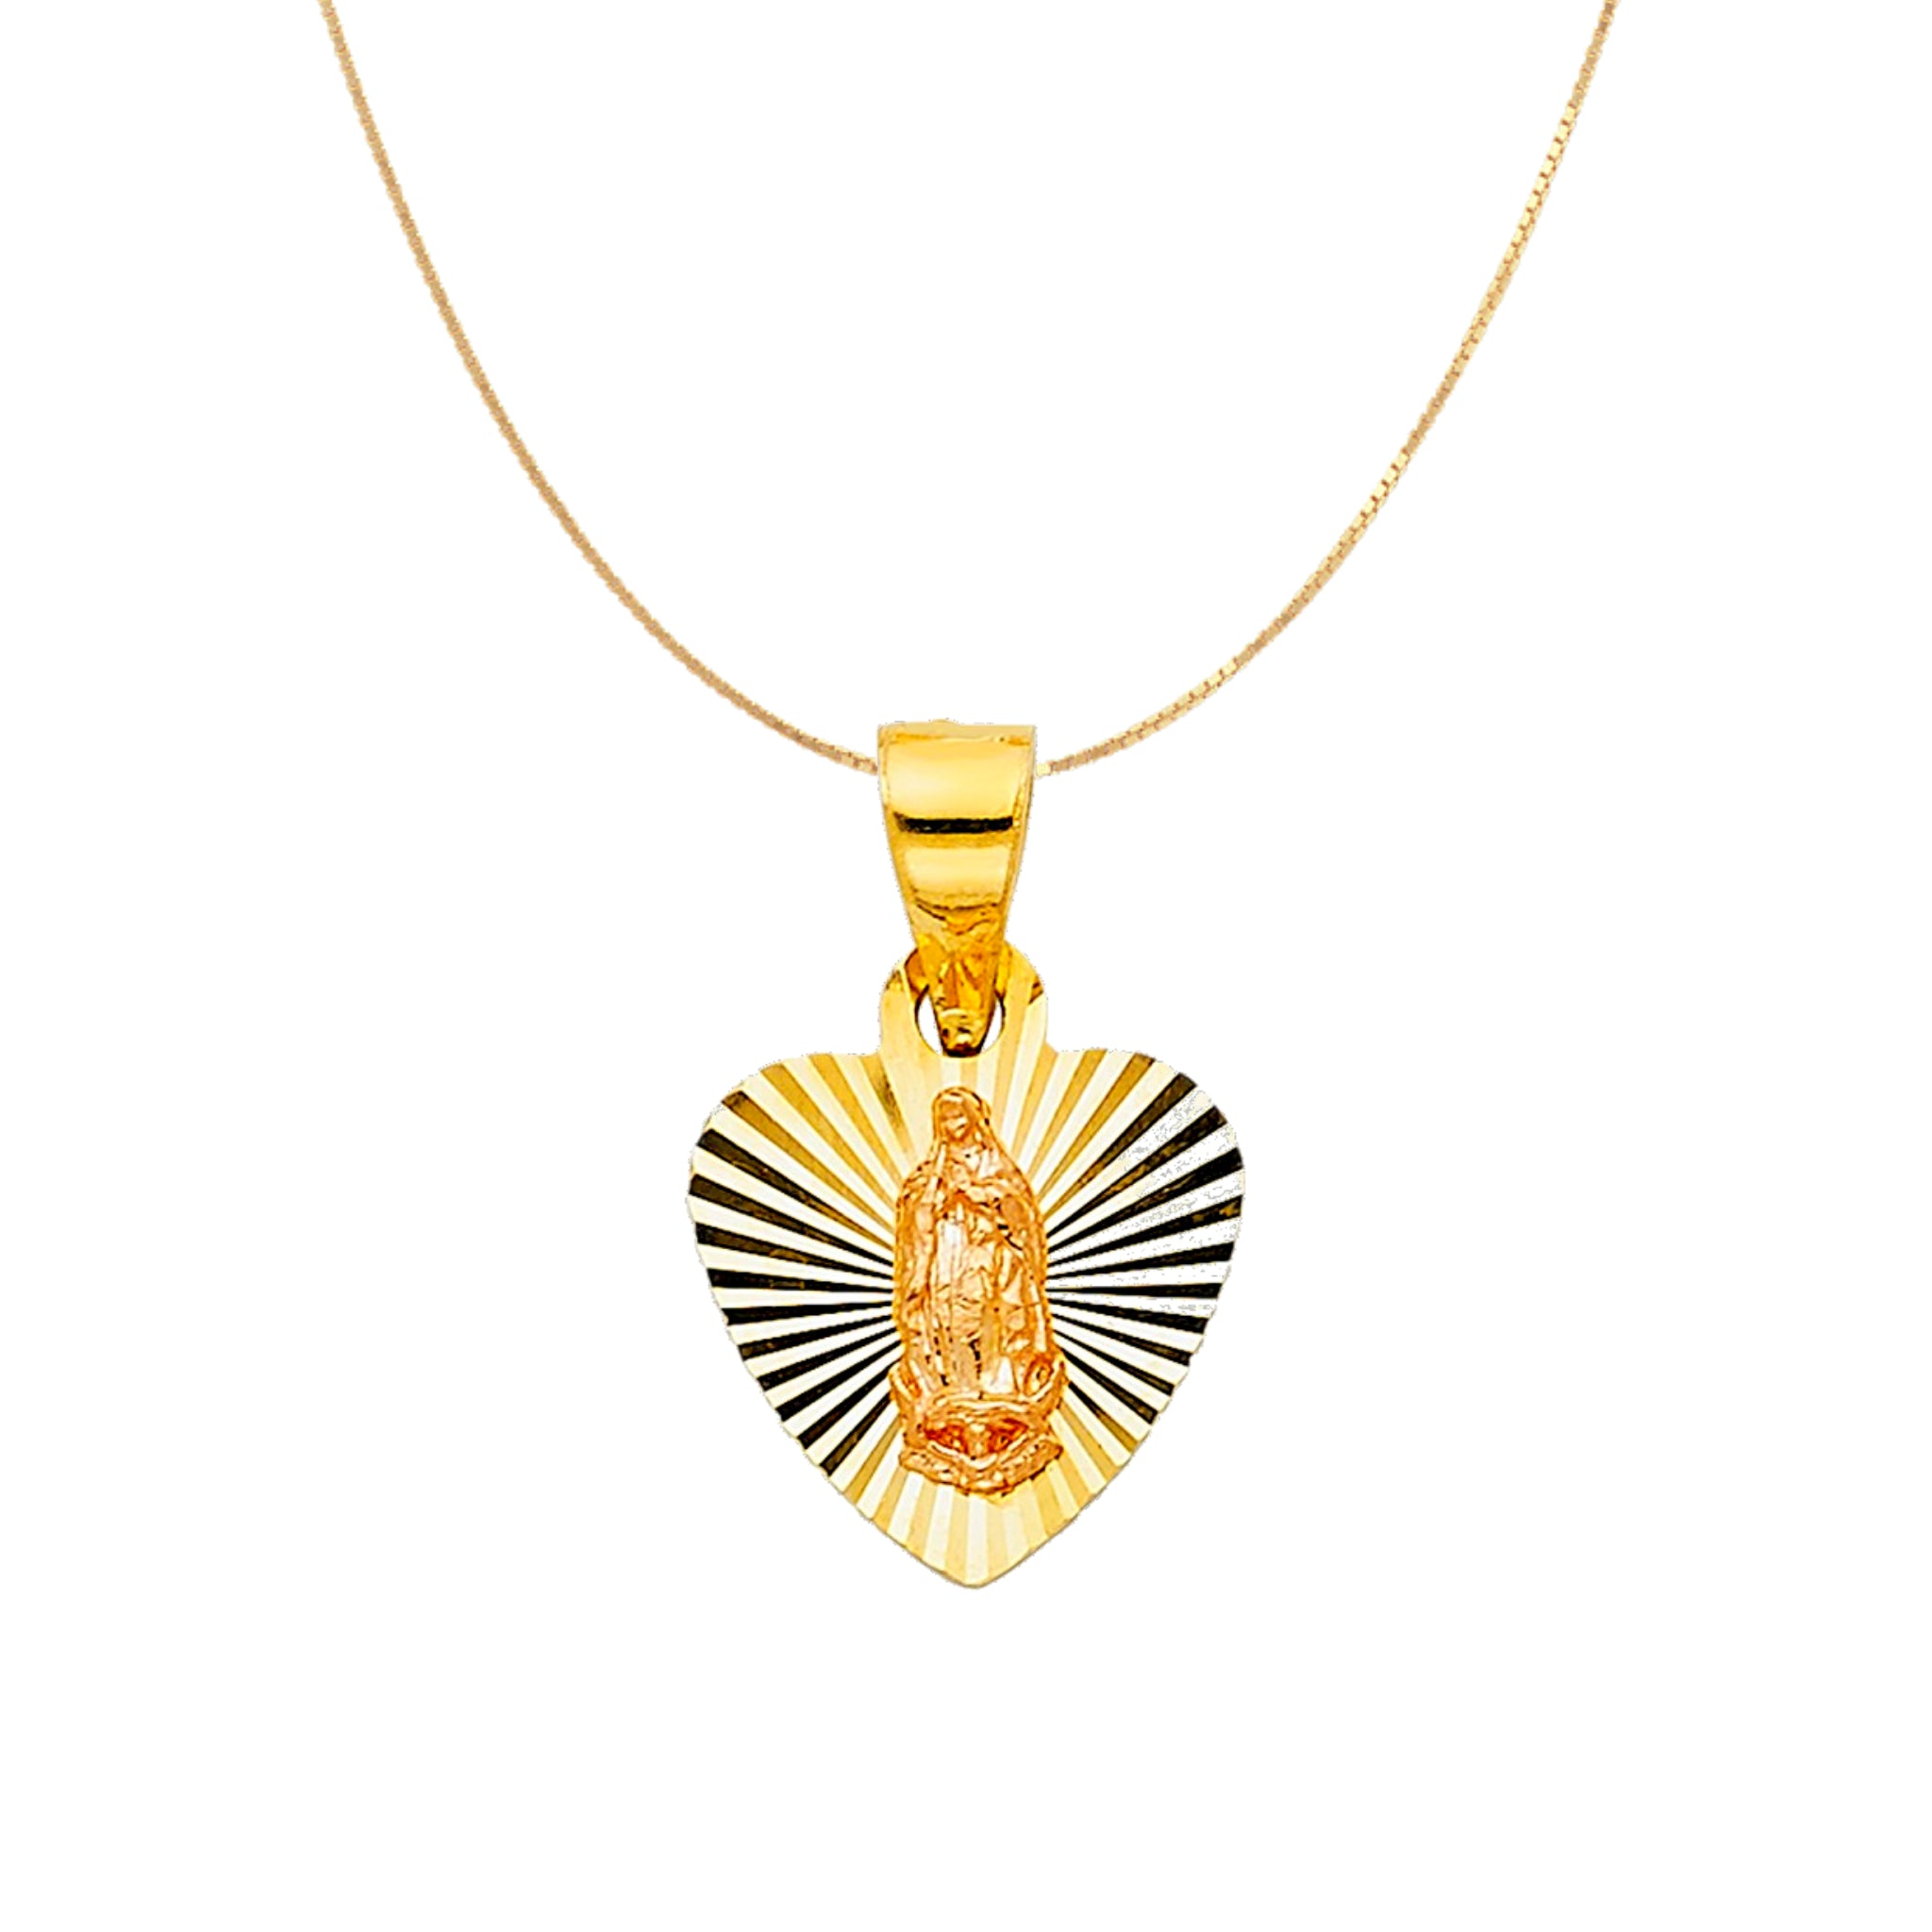 14K Gold Virgin Mary Heart Necklace